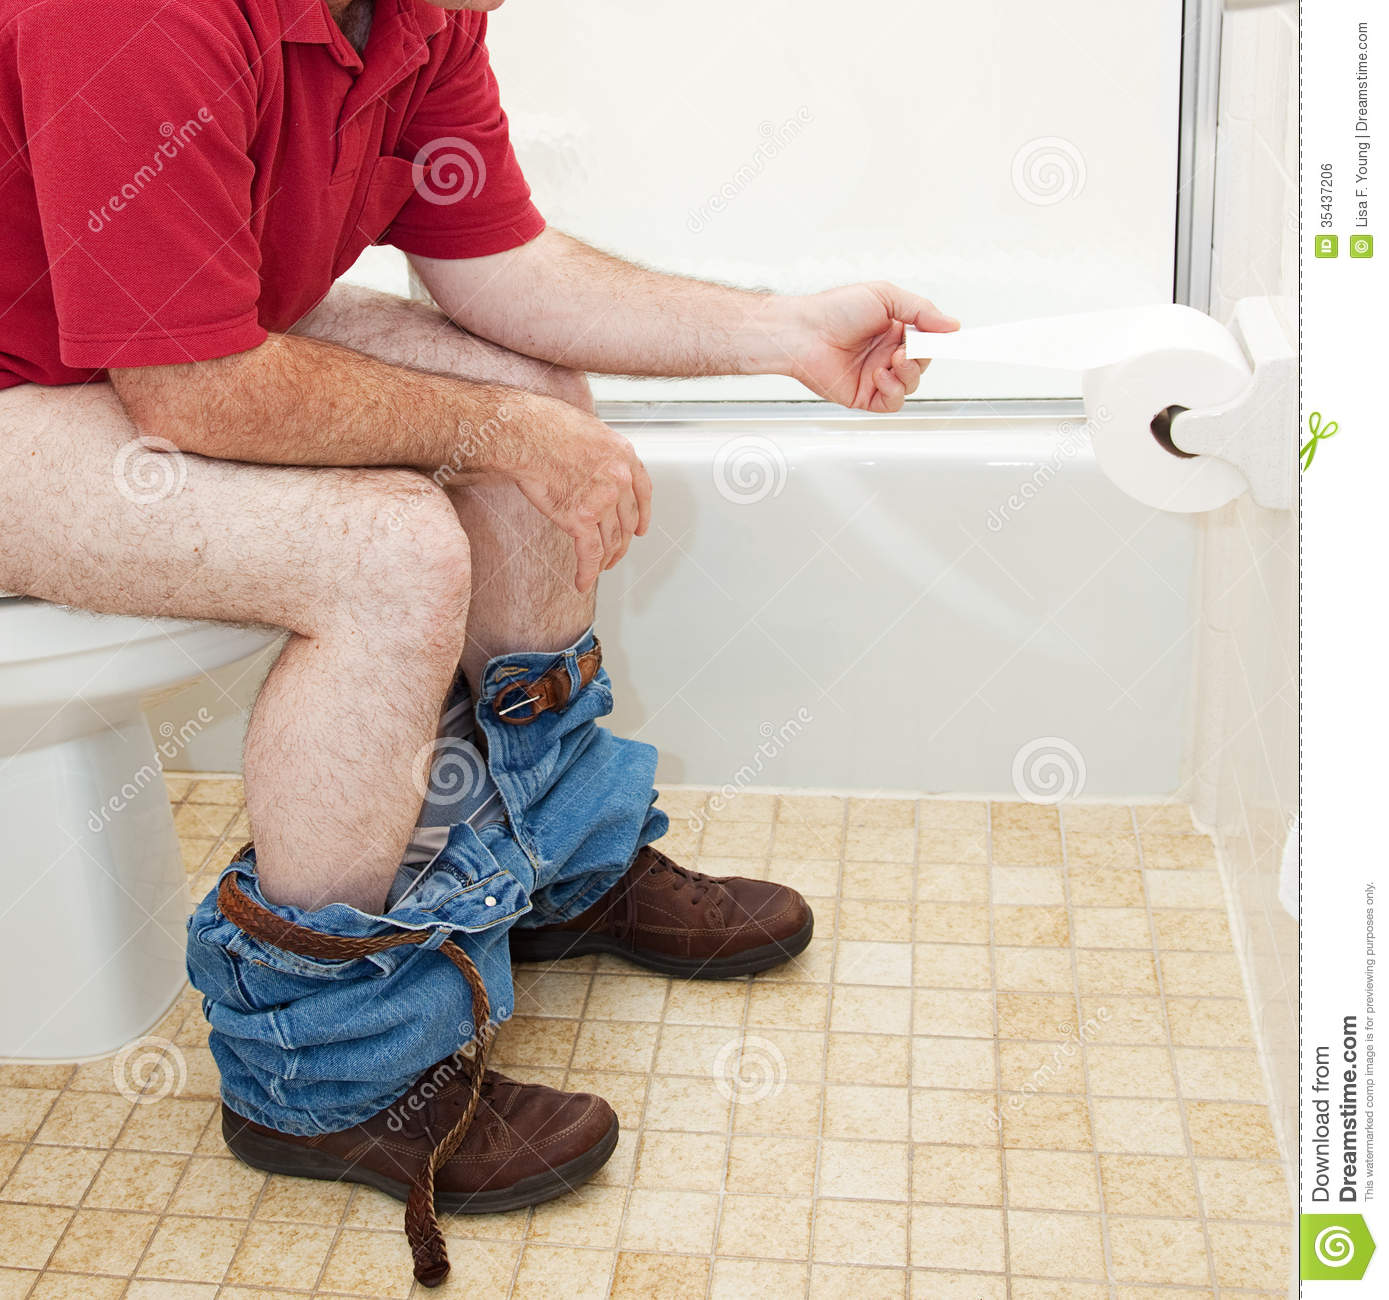 using the bathroom. Man Using Toilet Paper in Bathroom In Stock Photo  Image 35437206